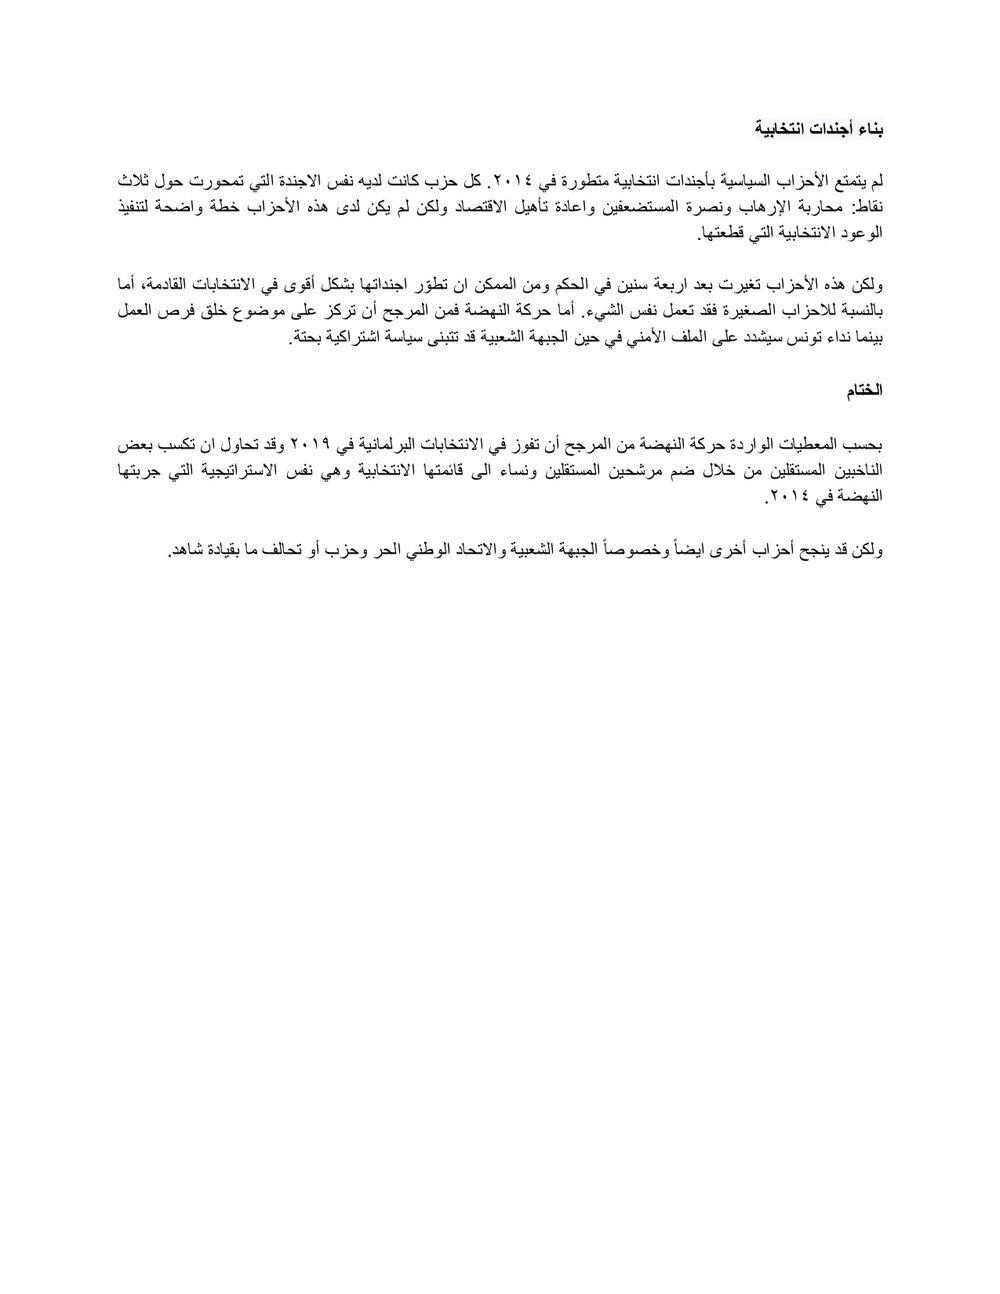 RC article Arabic with IS edits (1).jpg